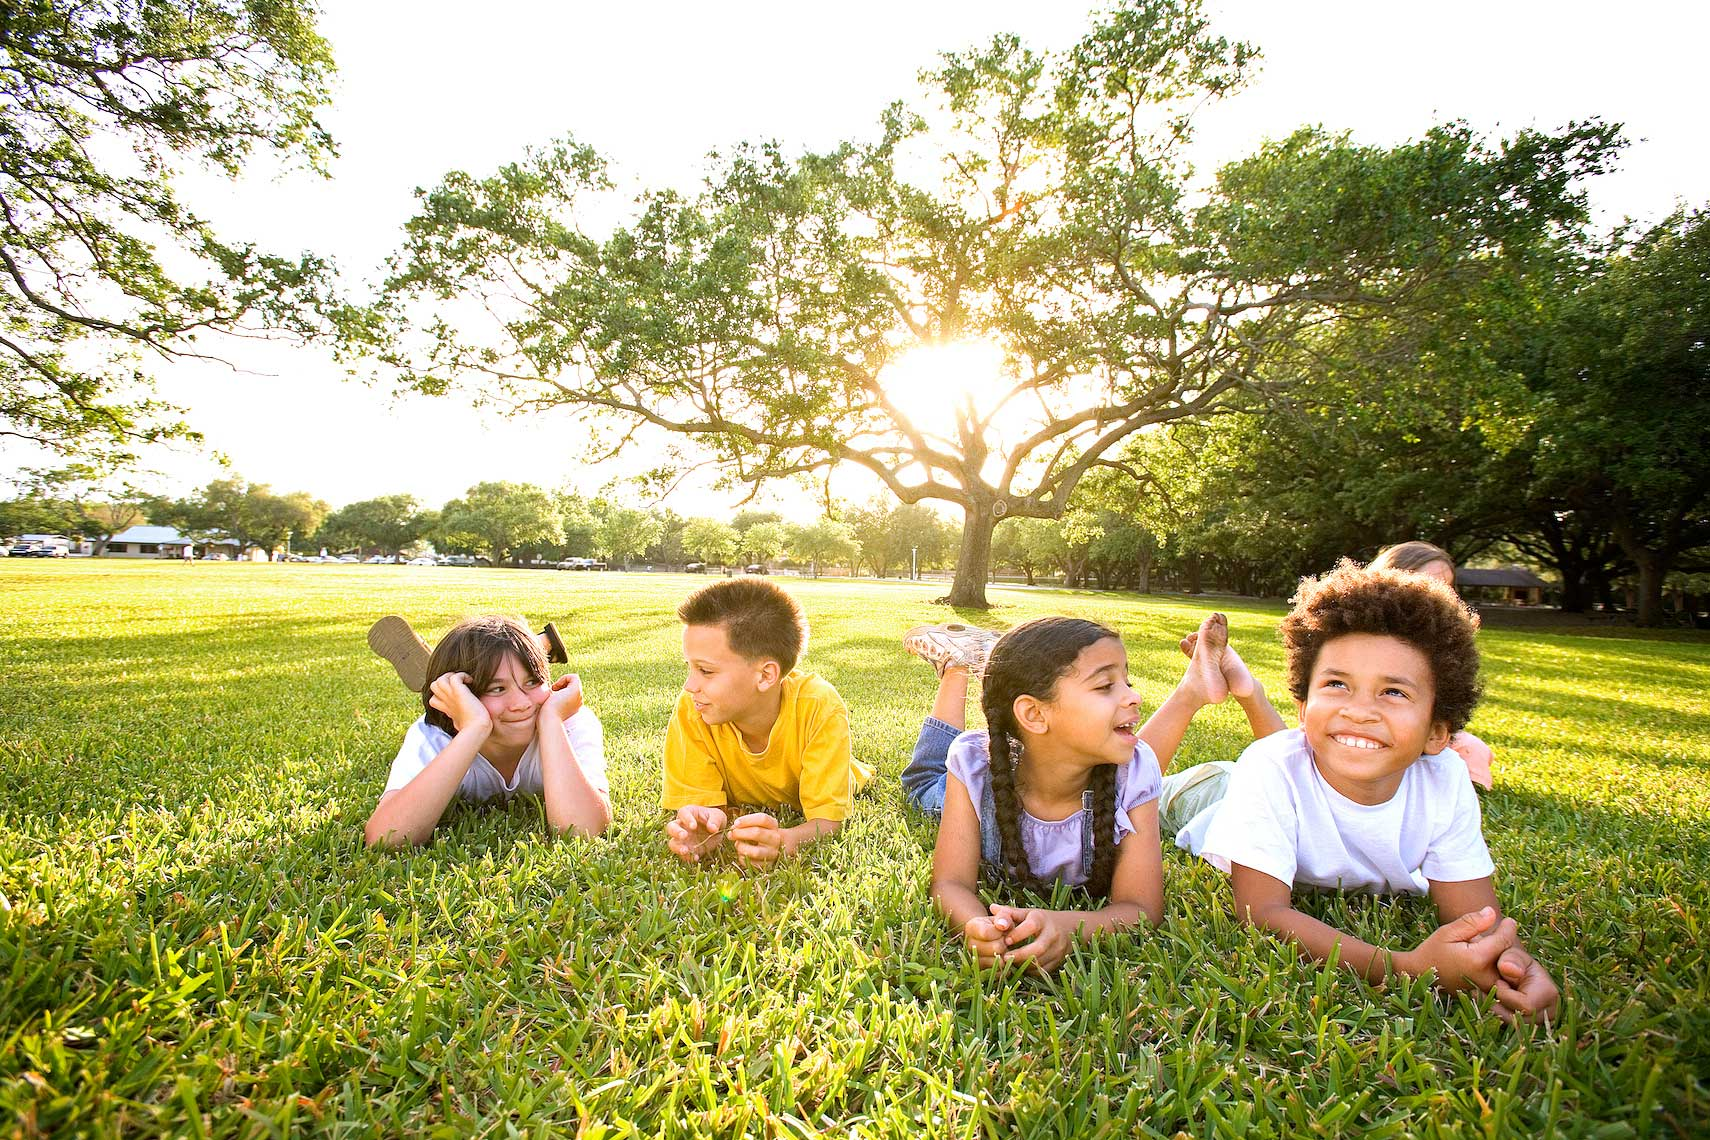 four children laying on grass hanging out at park, Florida_Robert_Holland.jpg